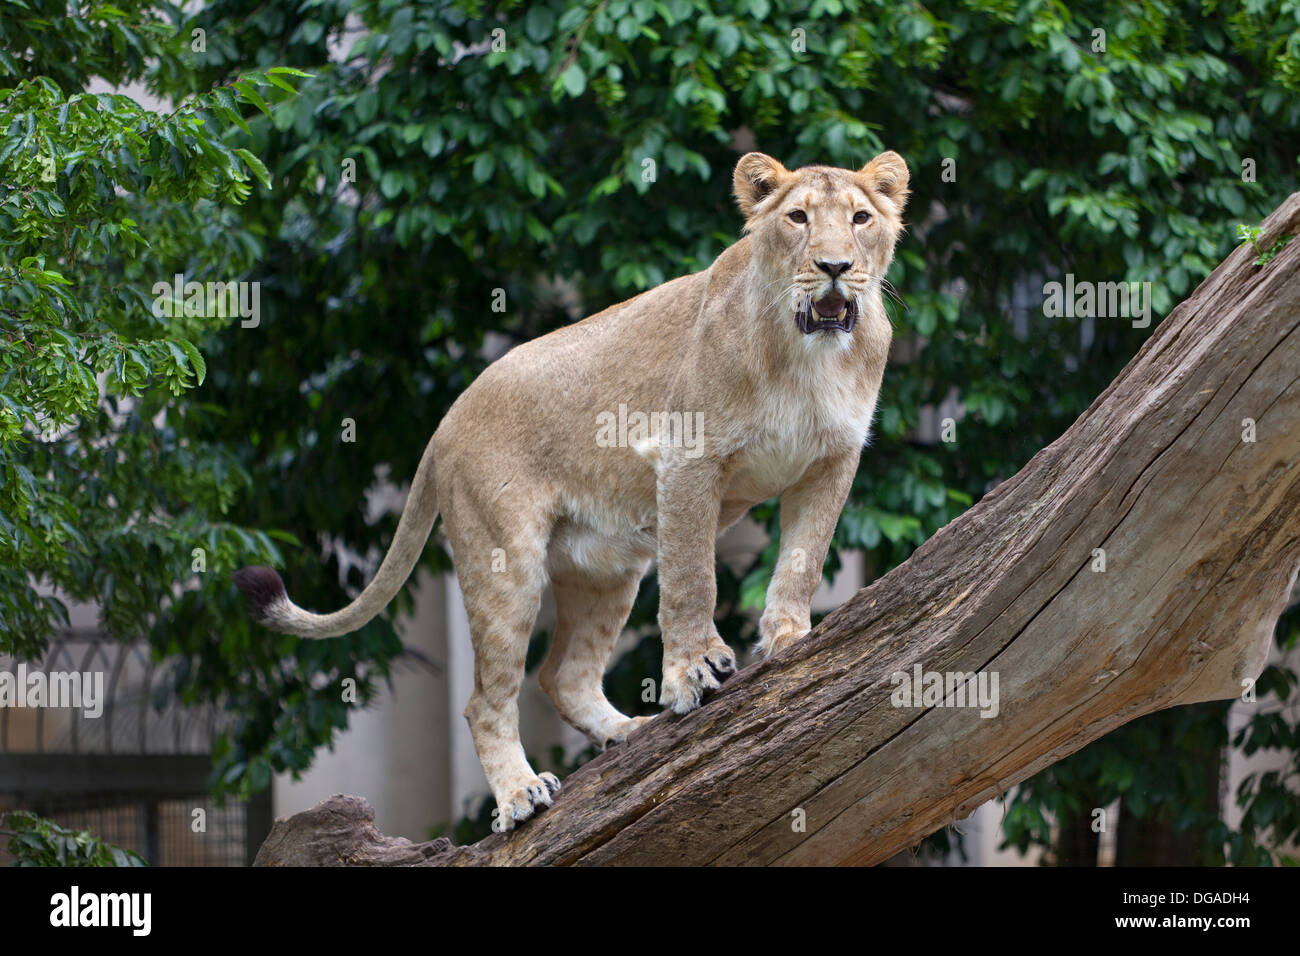 Lioness on a tree trunk in the zoo - Stock Image